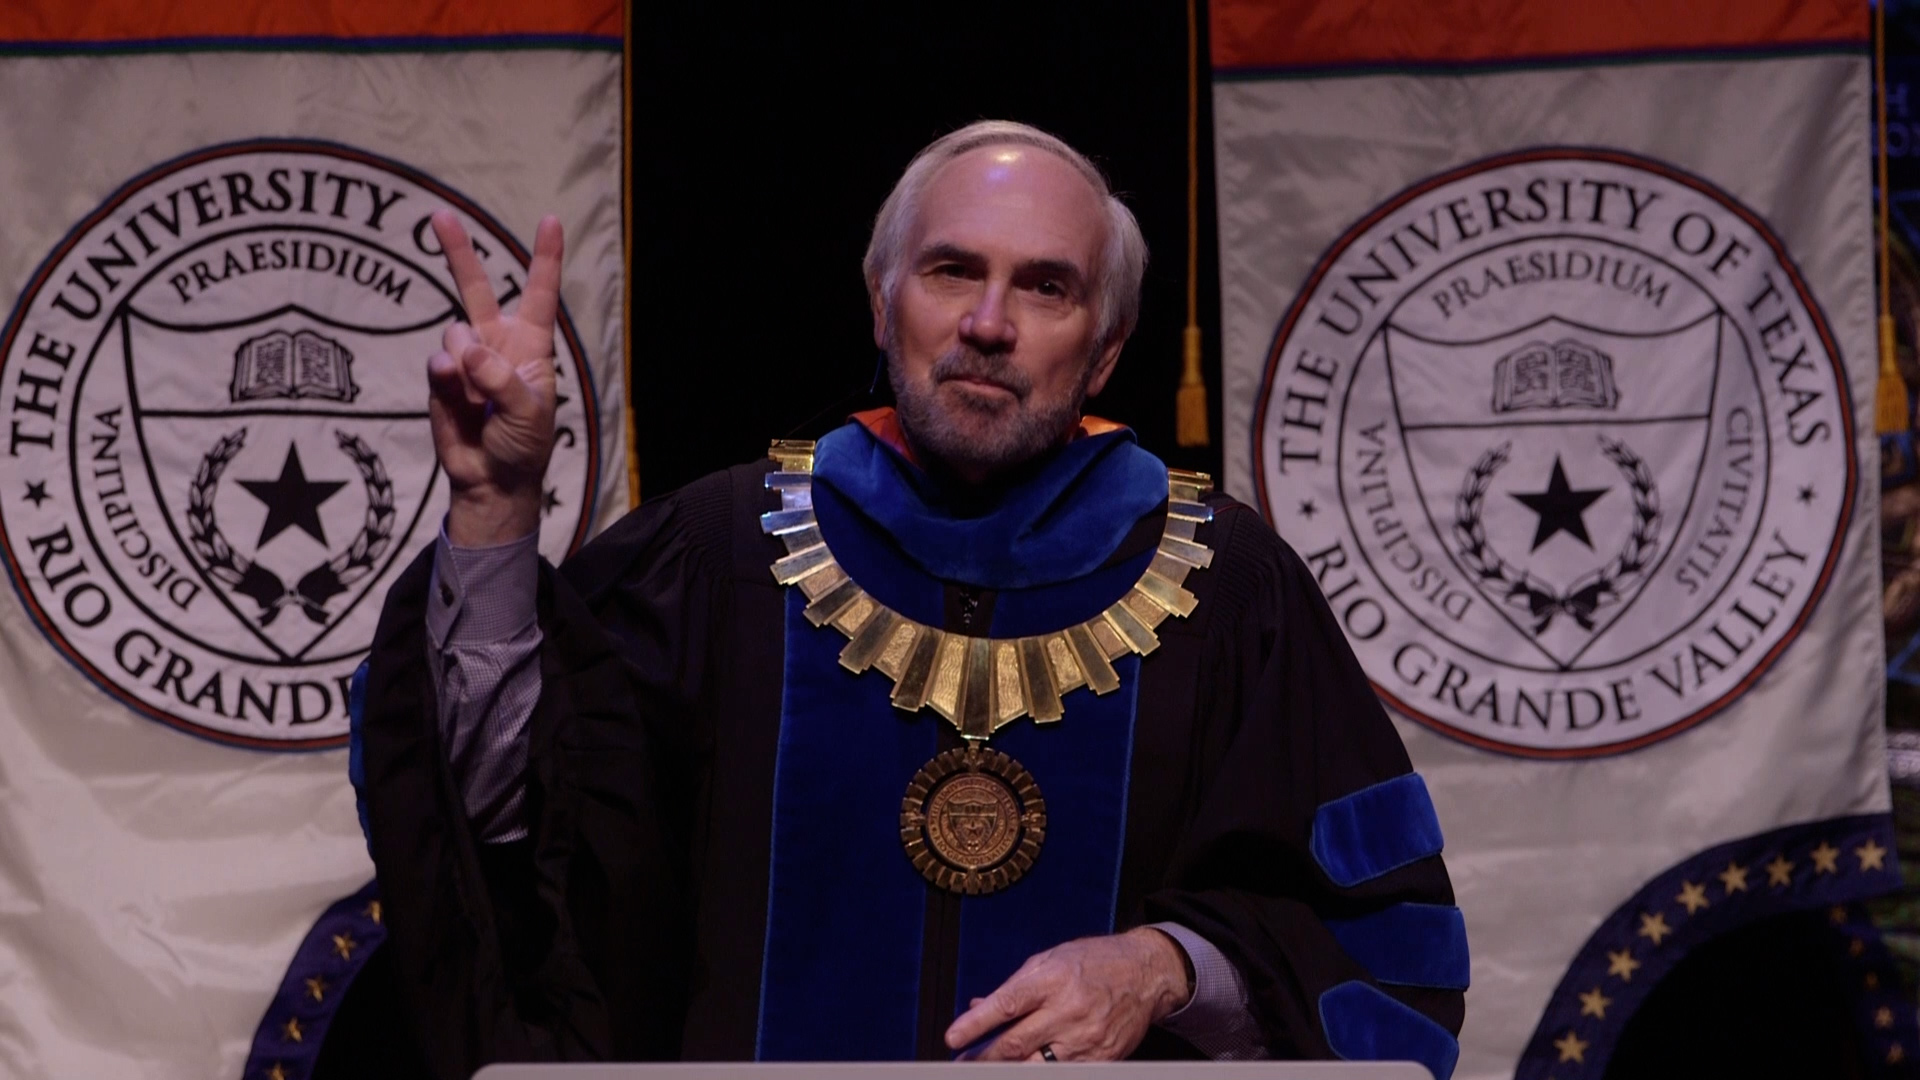 UTRGV President Guy Bailey shows his school spirit by putting his V's Up during the 2020 Fall Virtual Commencement on Saturday, Dec. 12. The virtual event celebrated close to 2,700 graduates. (UTRGV Photo by Paul Chouy)